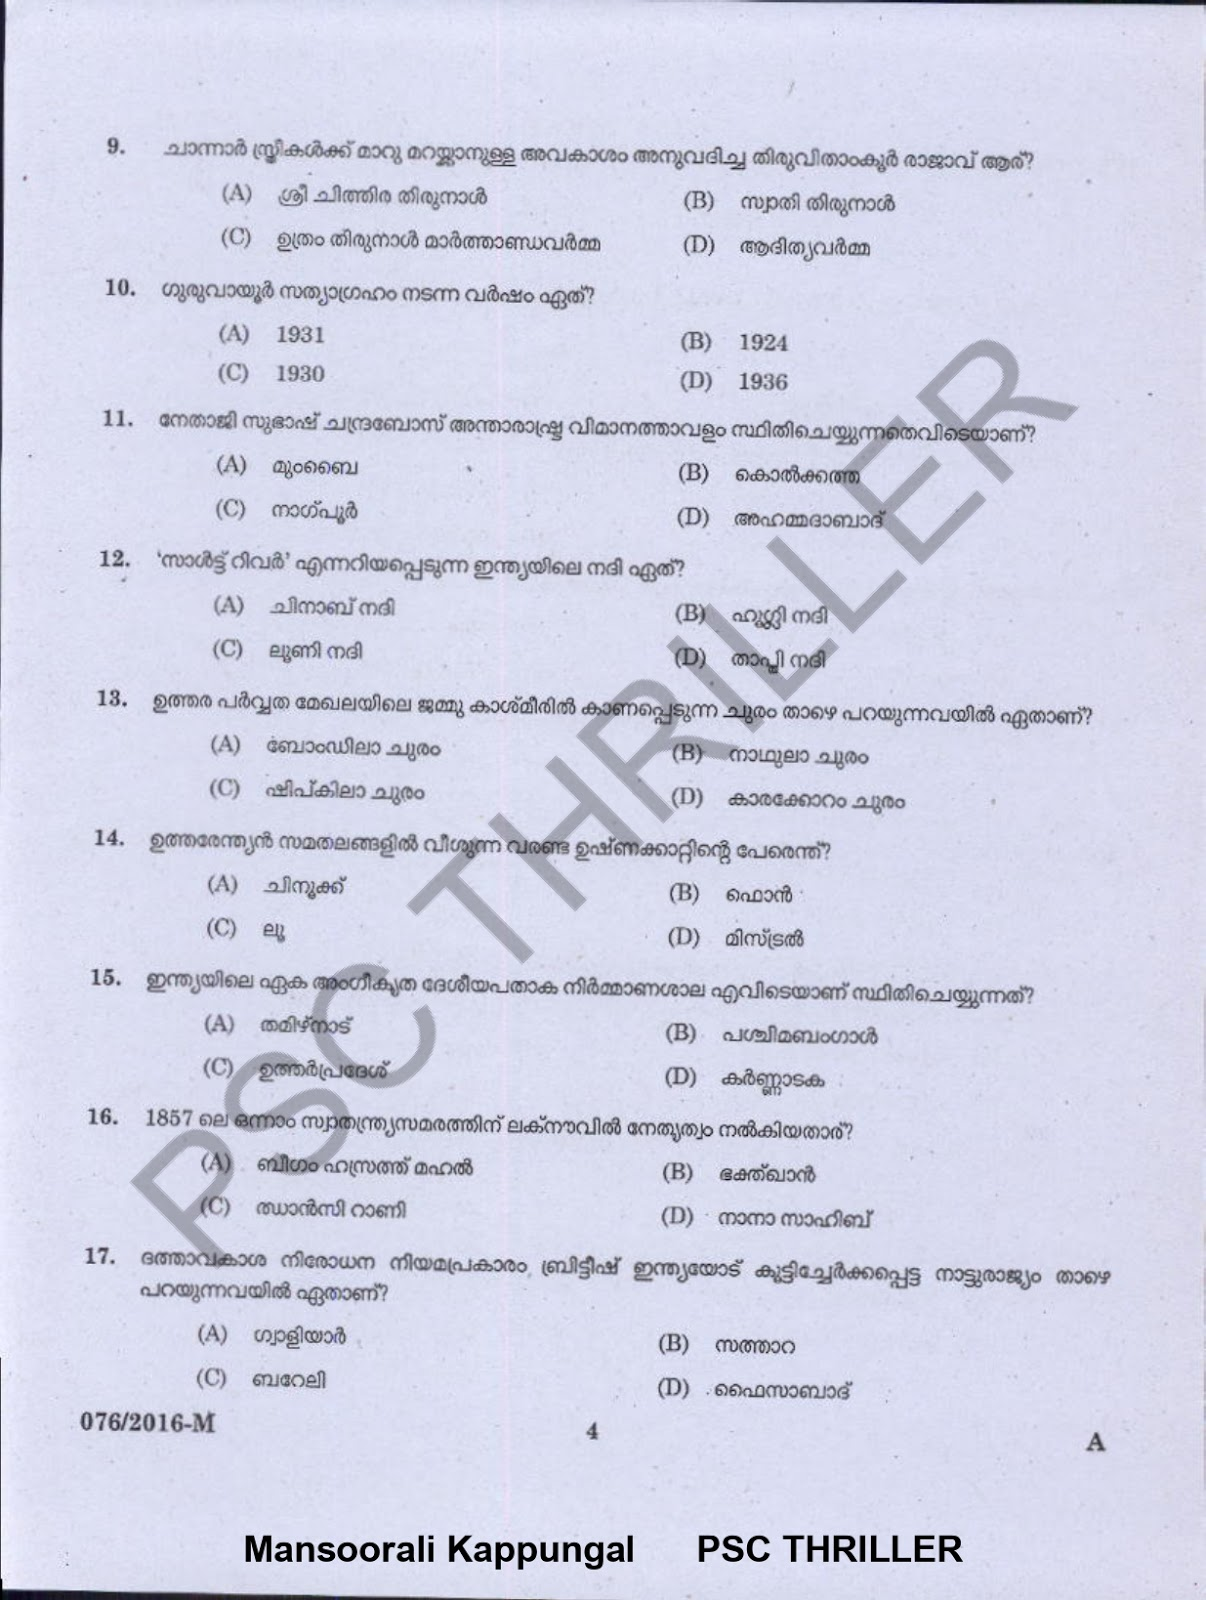 Male Warder- Jails Wharf Supervisor - Question paper  76/2016 - Kerala PSC